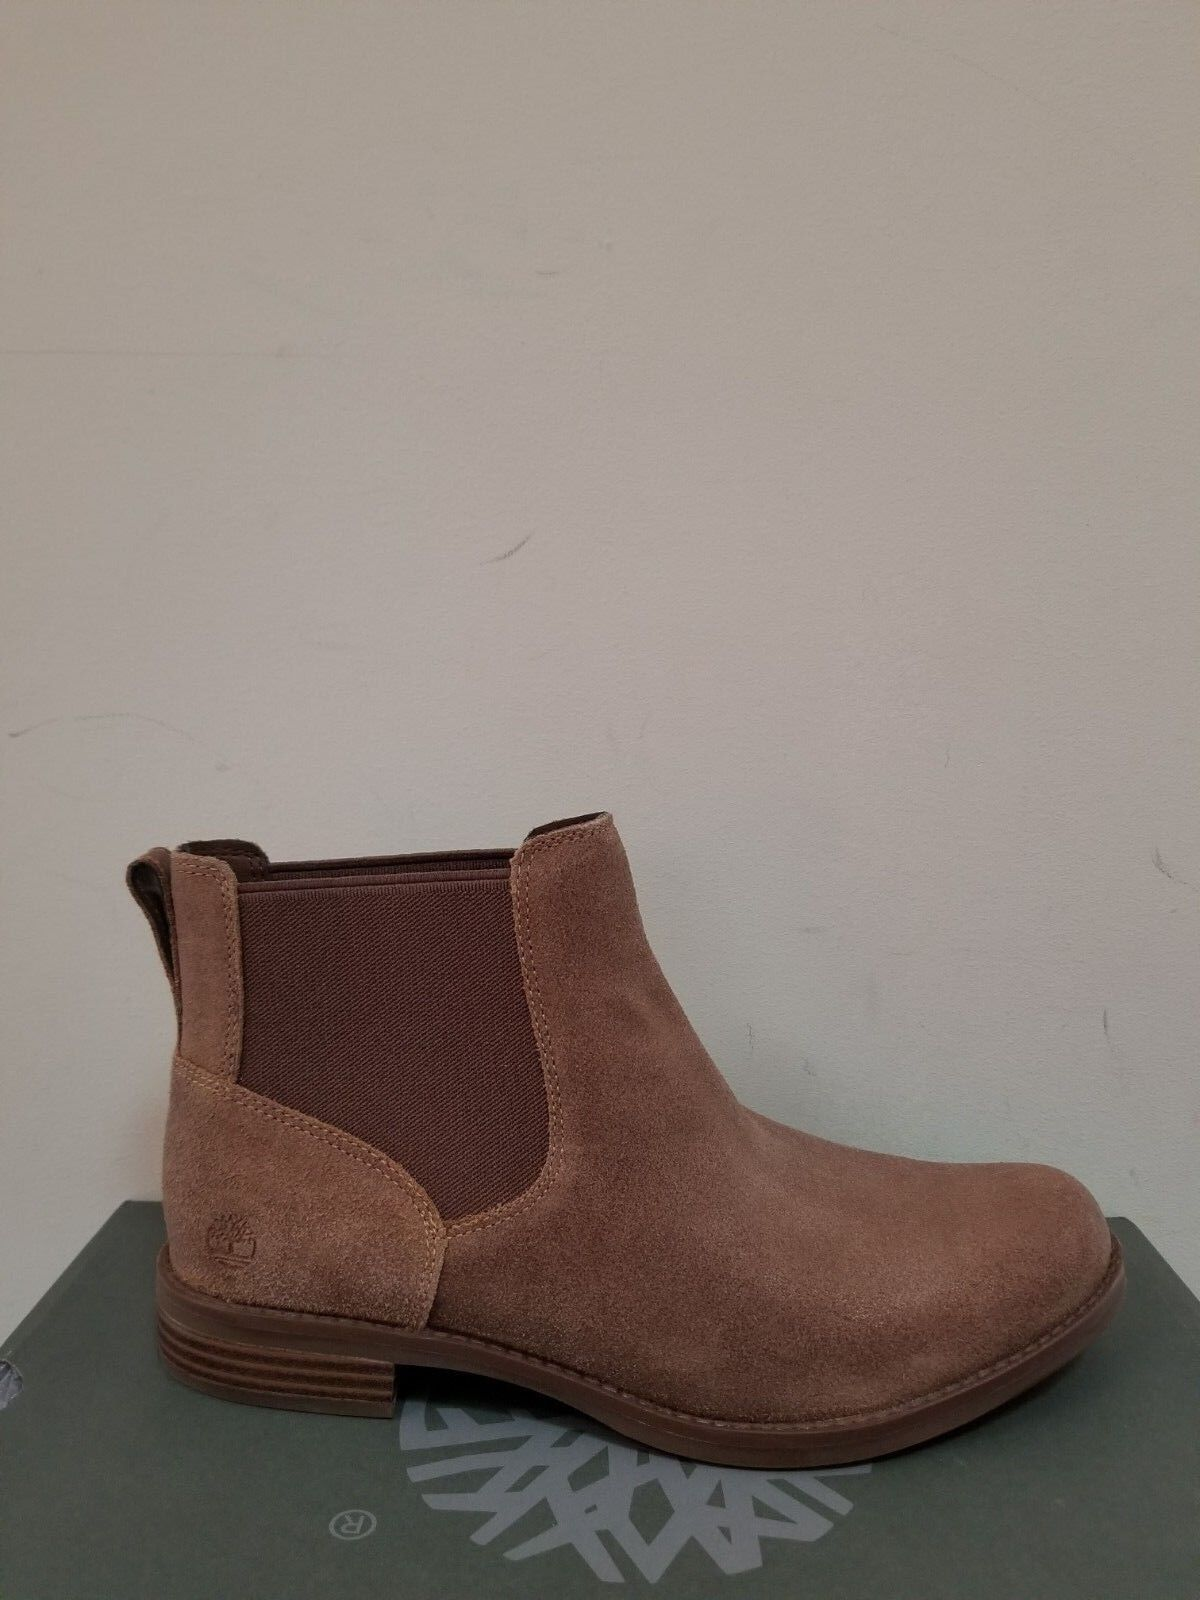 Timberland Women's Magby Chelsea Ankle Boots NIB